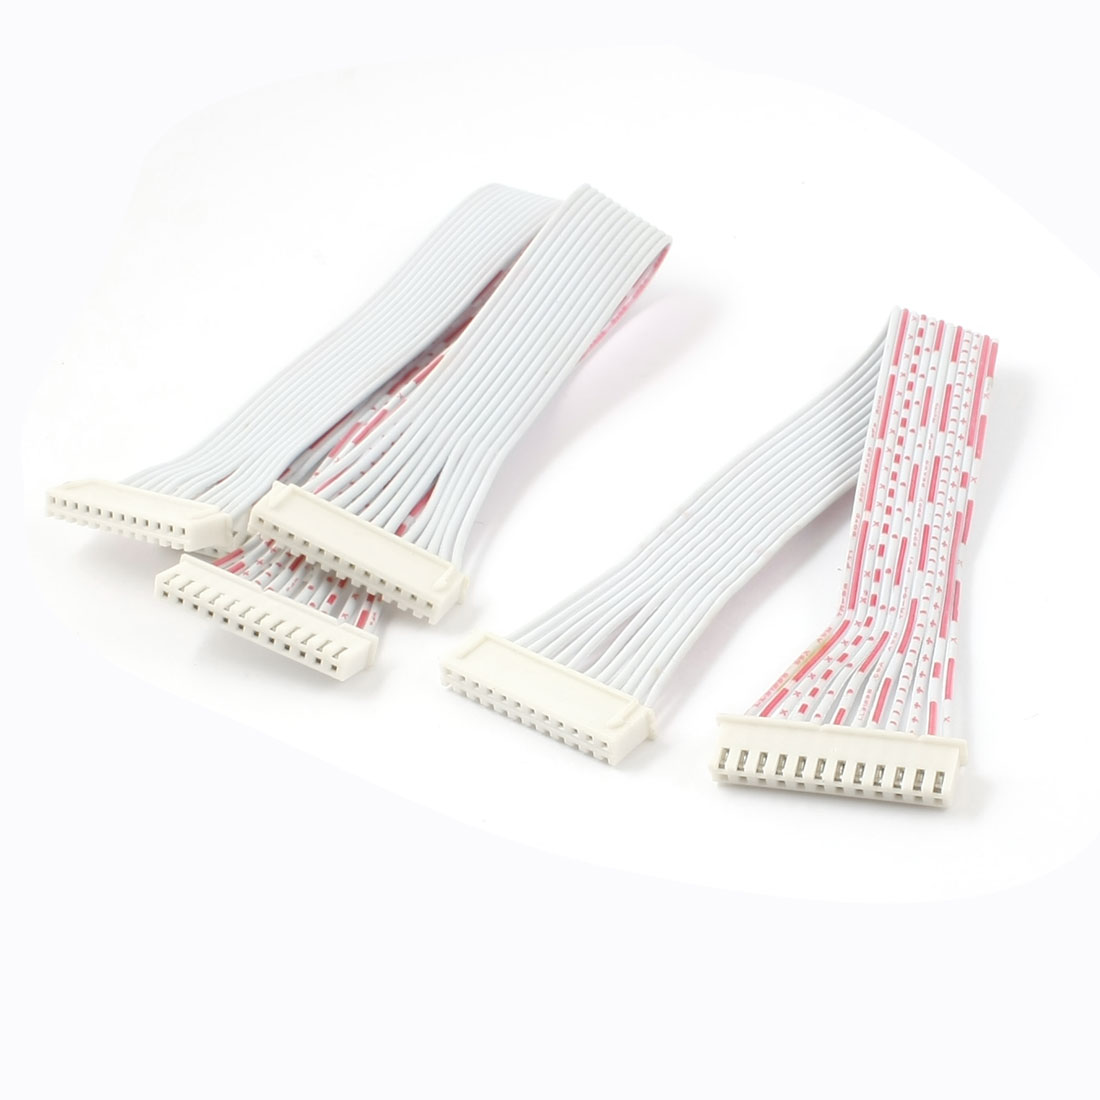 "3pcs 20cm 7.9"" IDC Ribbon Cable Gray for ISP JTAG ARM"